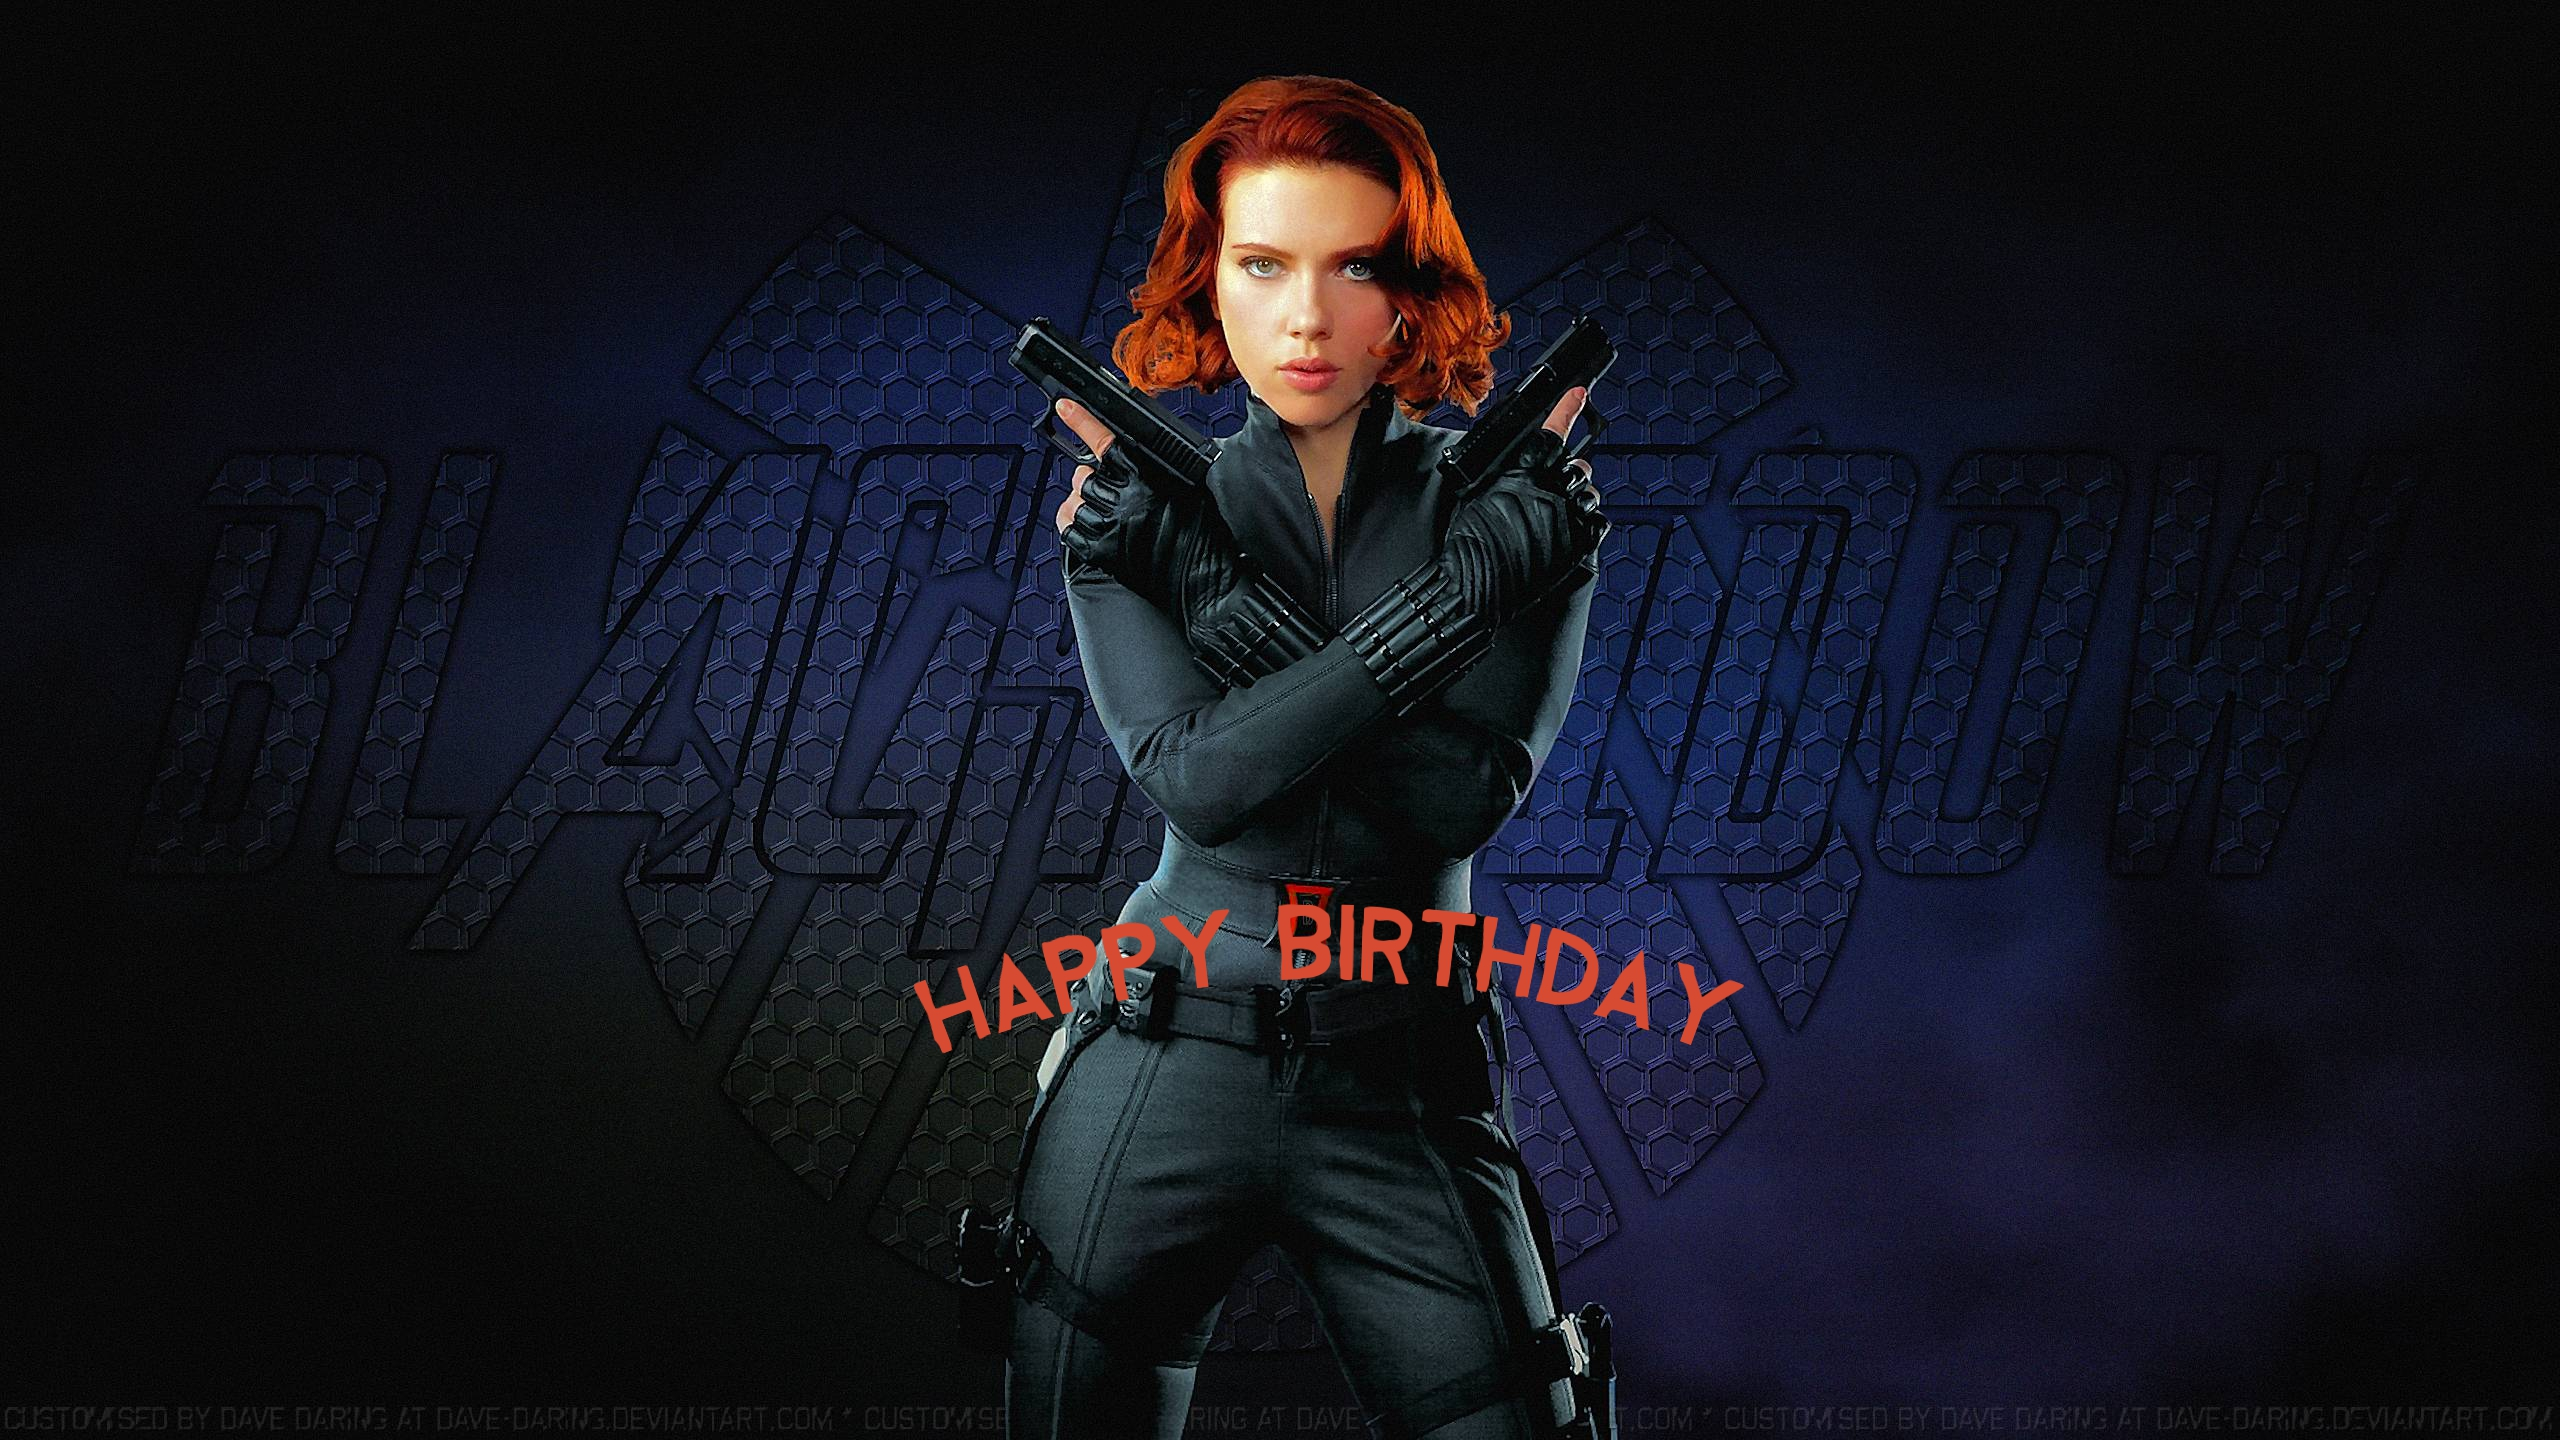 Black Widow birthday cards